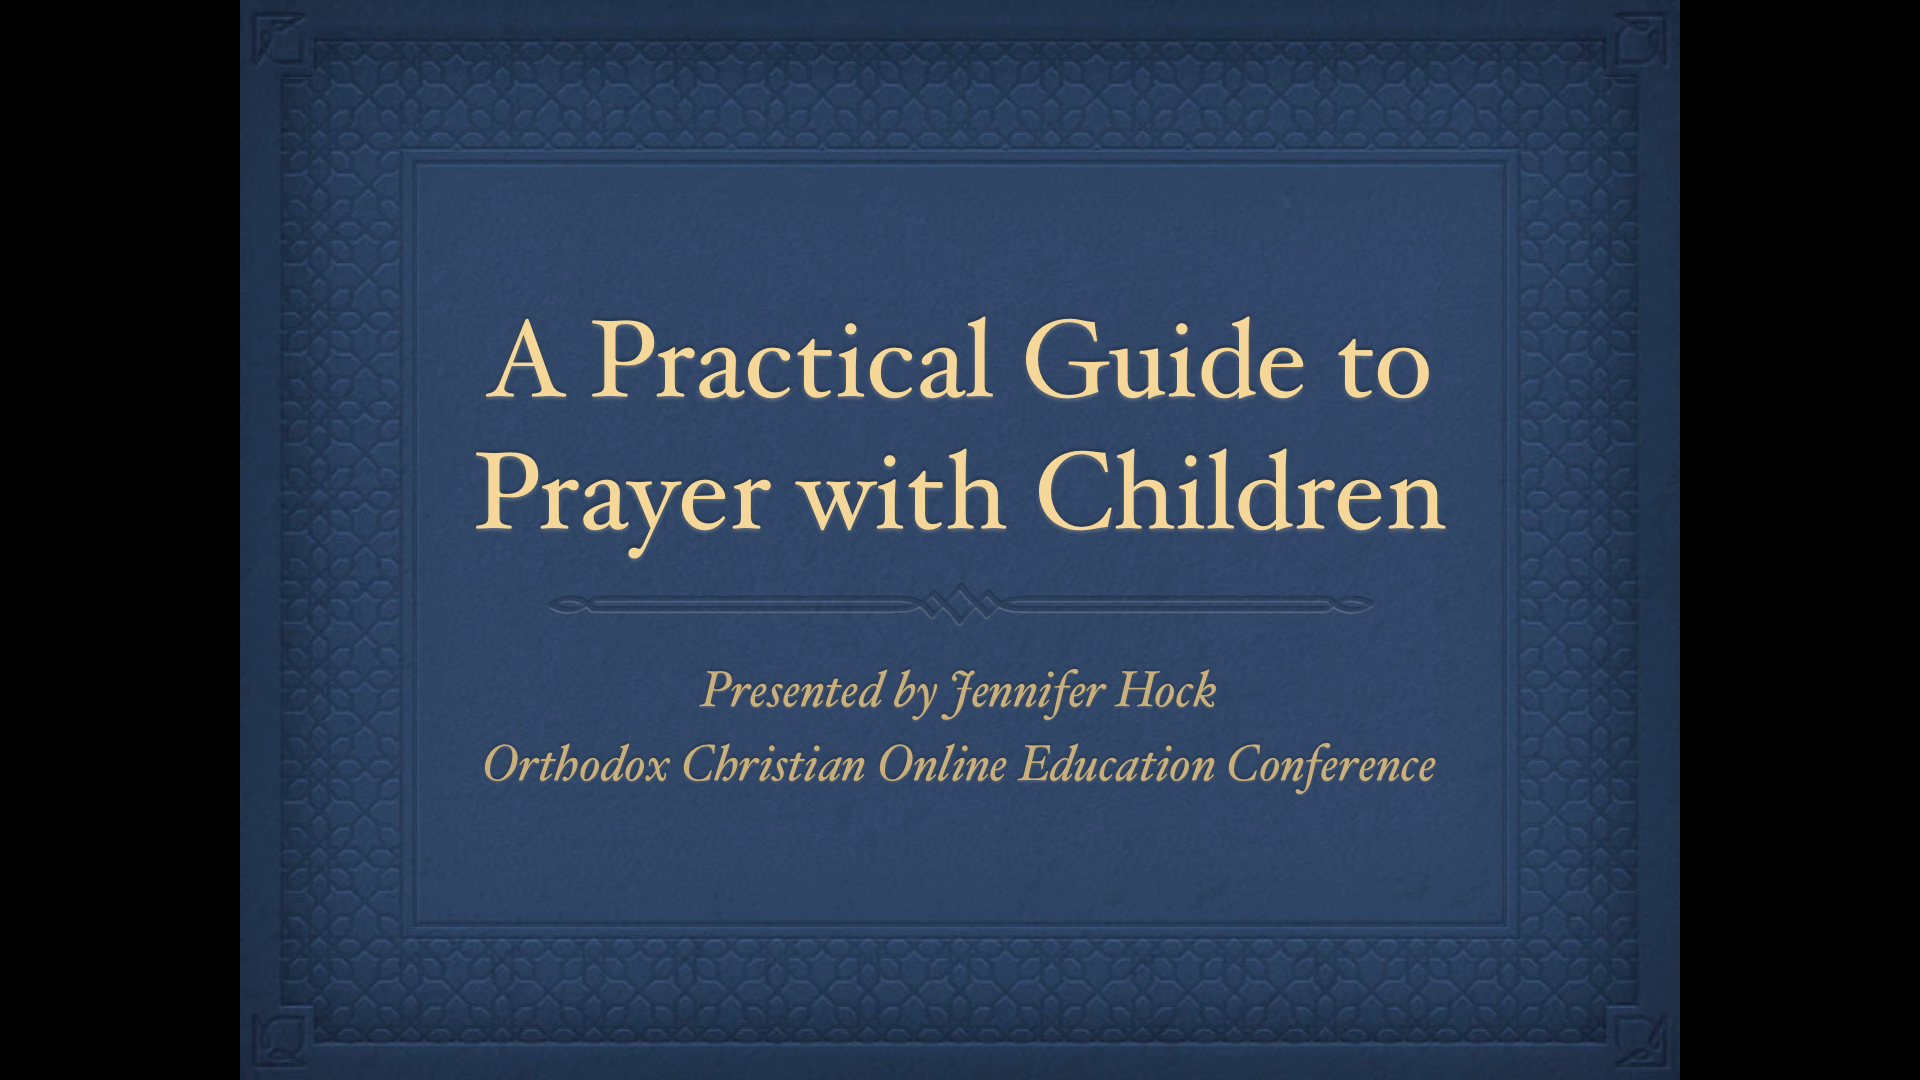 A Practical Guide to Prayer with Children